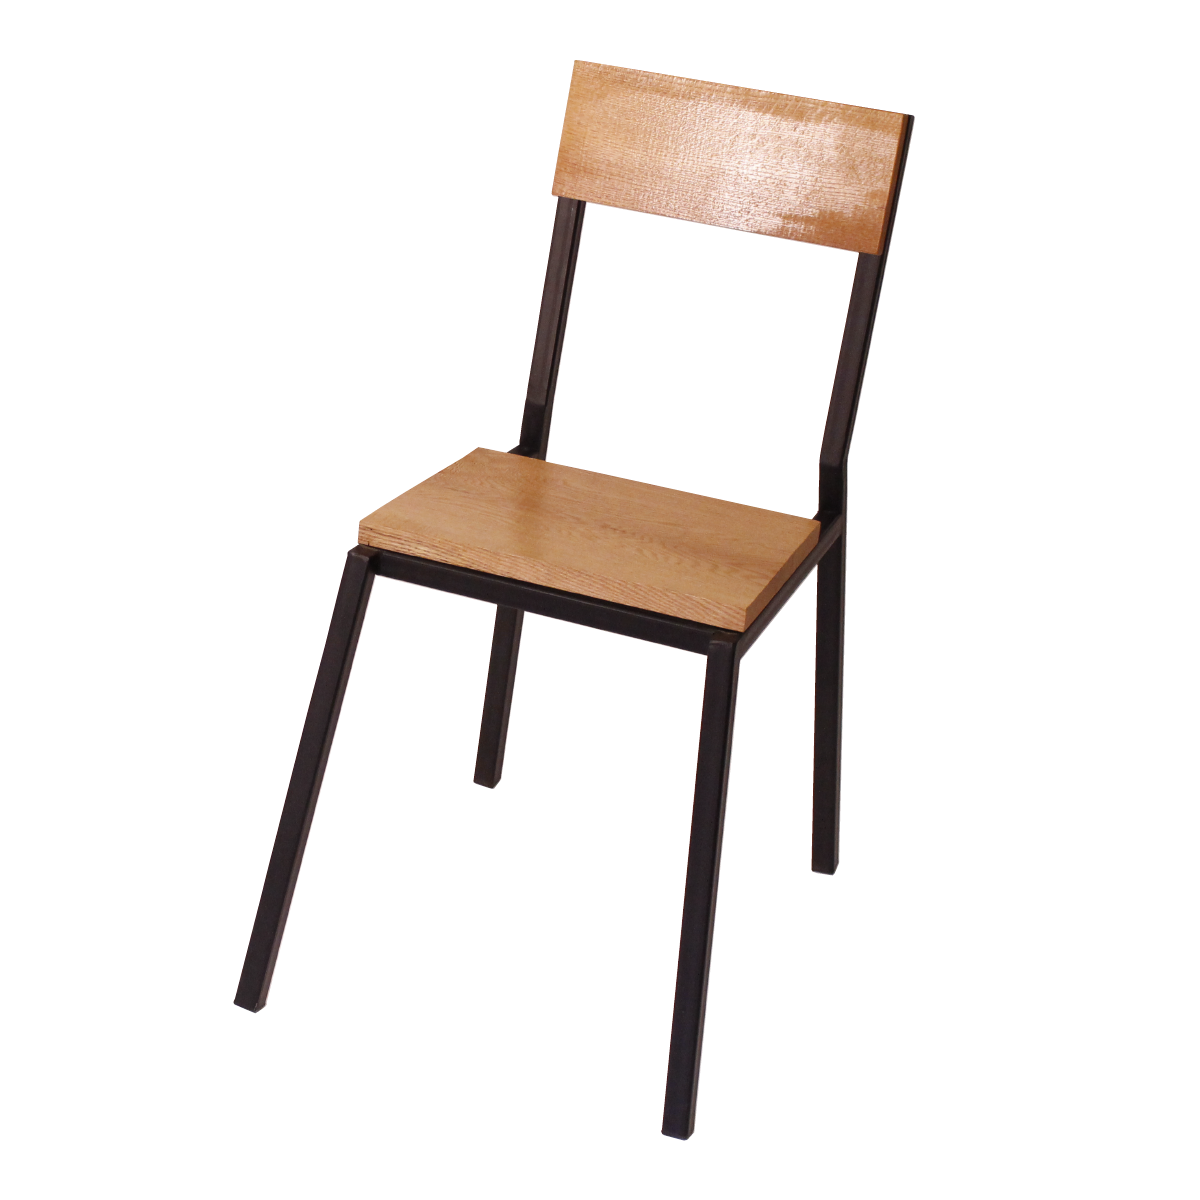 chair-3-quarter-oak-and-steel